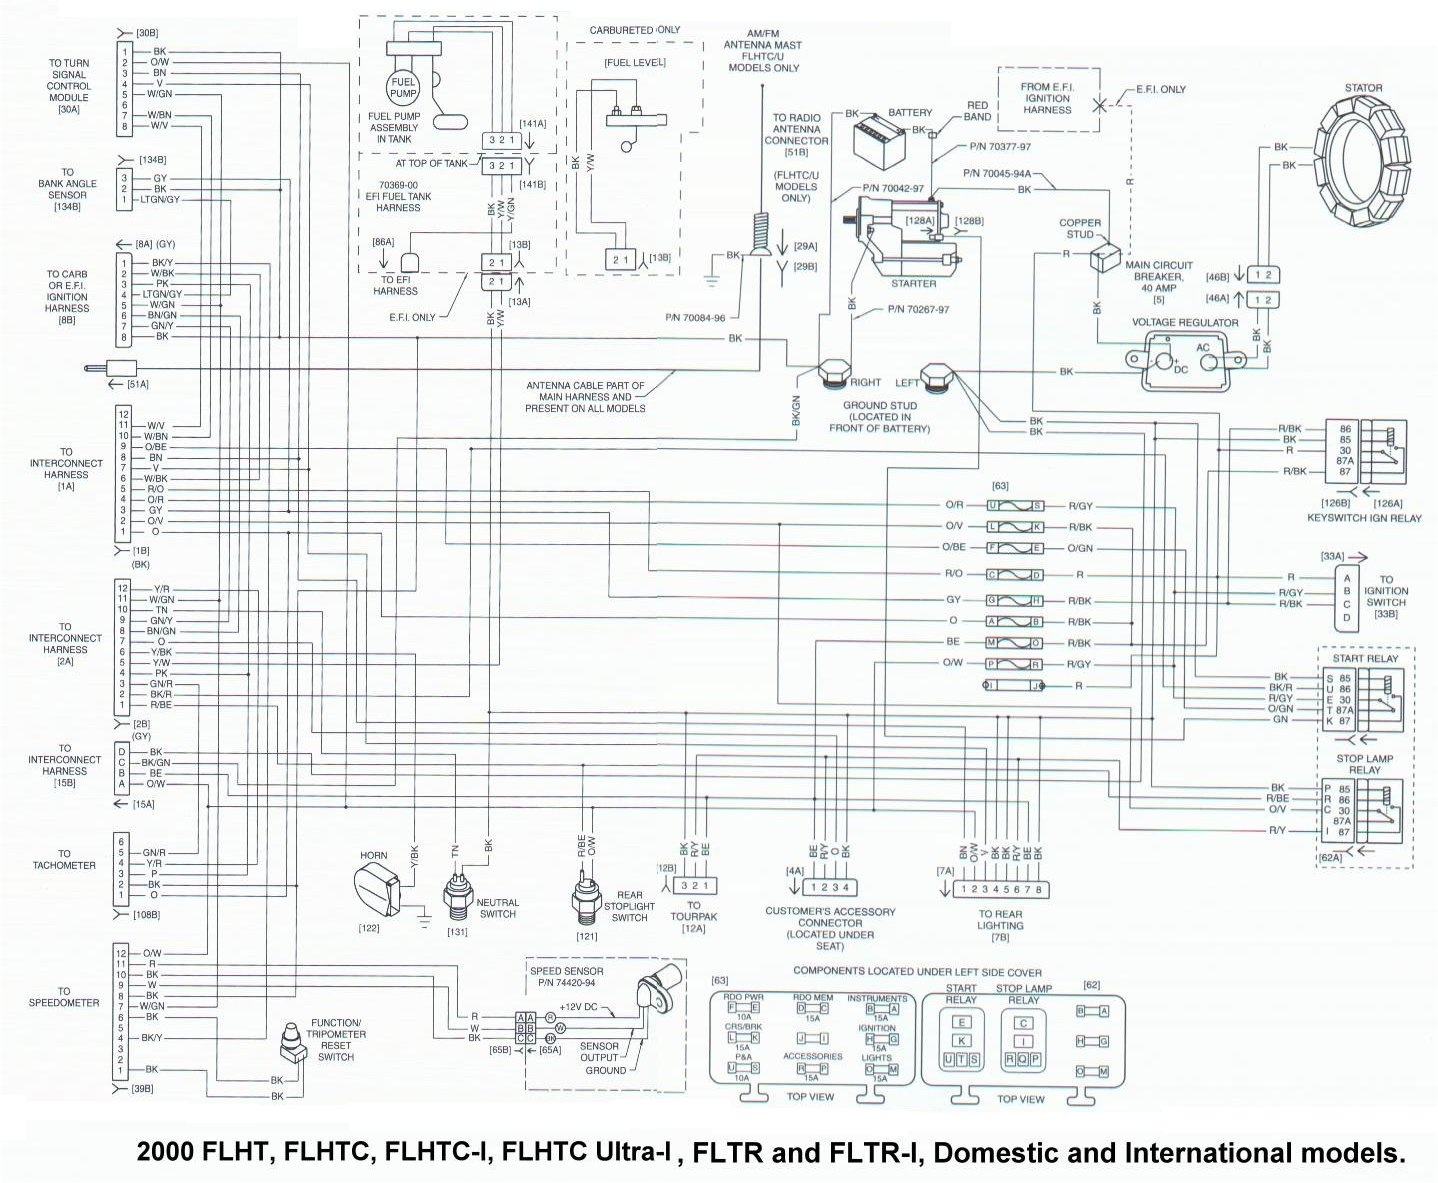 [SODI_2457]   92 Sportster Wiring Diagram Fuse Box In Audi A6 2006 -  power-pole.pisang-panjang2.astrea-construction.fr | 1986 Harley Heritage Softail Wiring Diagram |  | Begeboy Wiring Diagram Source - ASTREA CONSTRUCTION